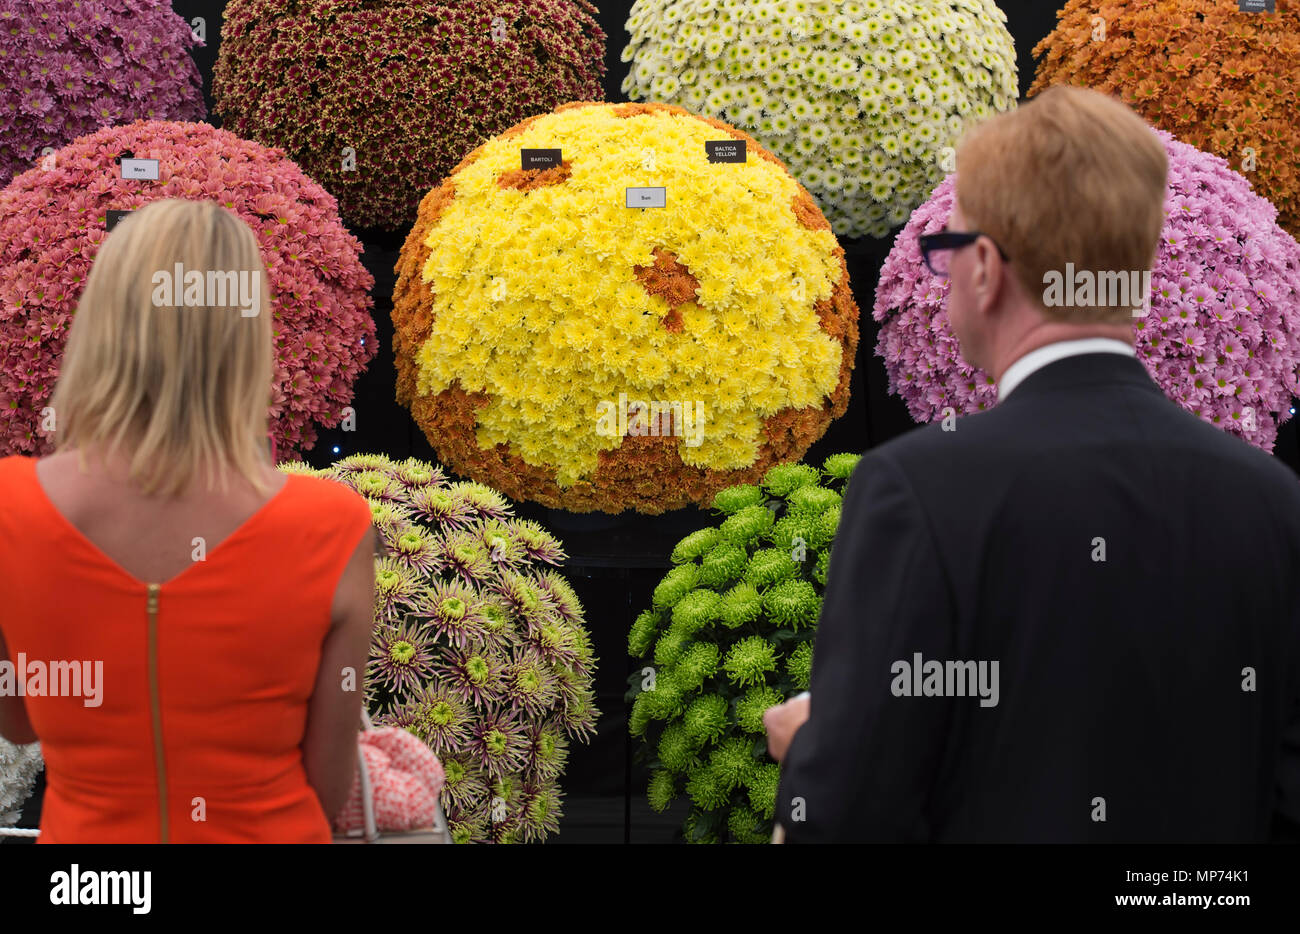 Royal Hospital Chelsea, London, UK. 21 May, 2018. Press day for the RHS Chelsea Flower Show 2018. Photo: Vibrant colours in The Great Pavilion. Credit: Malcolm Park/Alamy Live News. - Stock Image